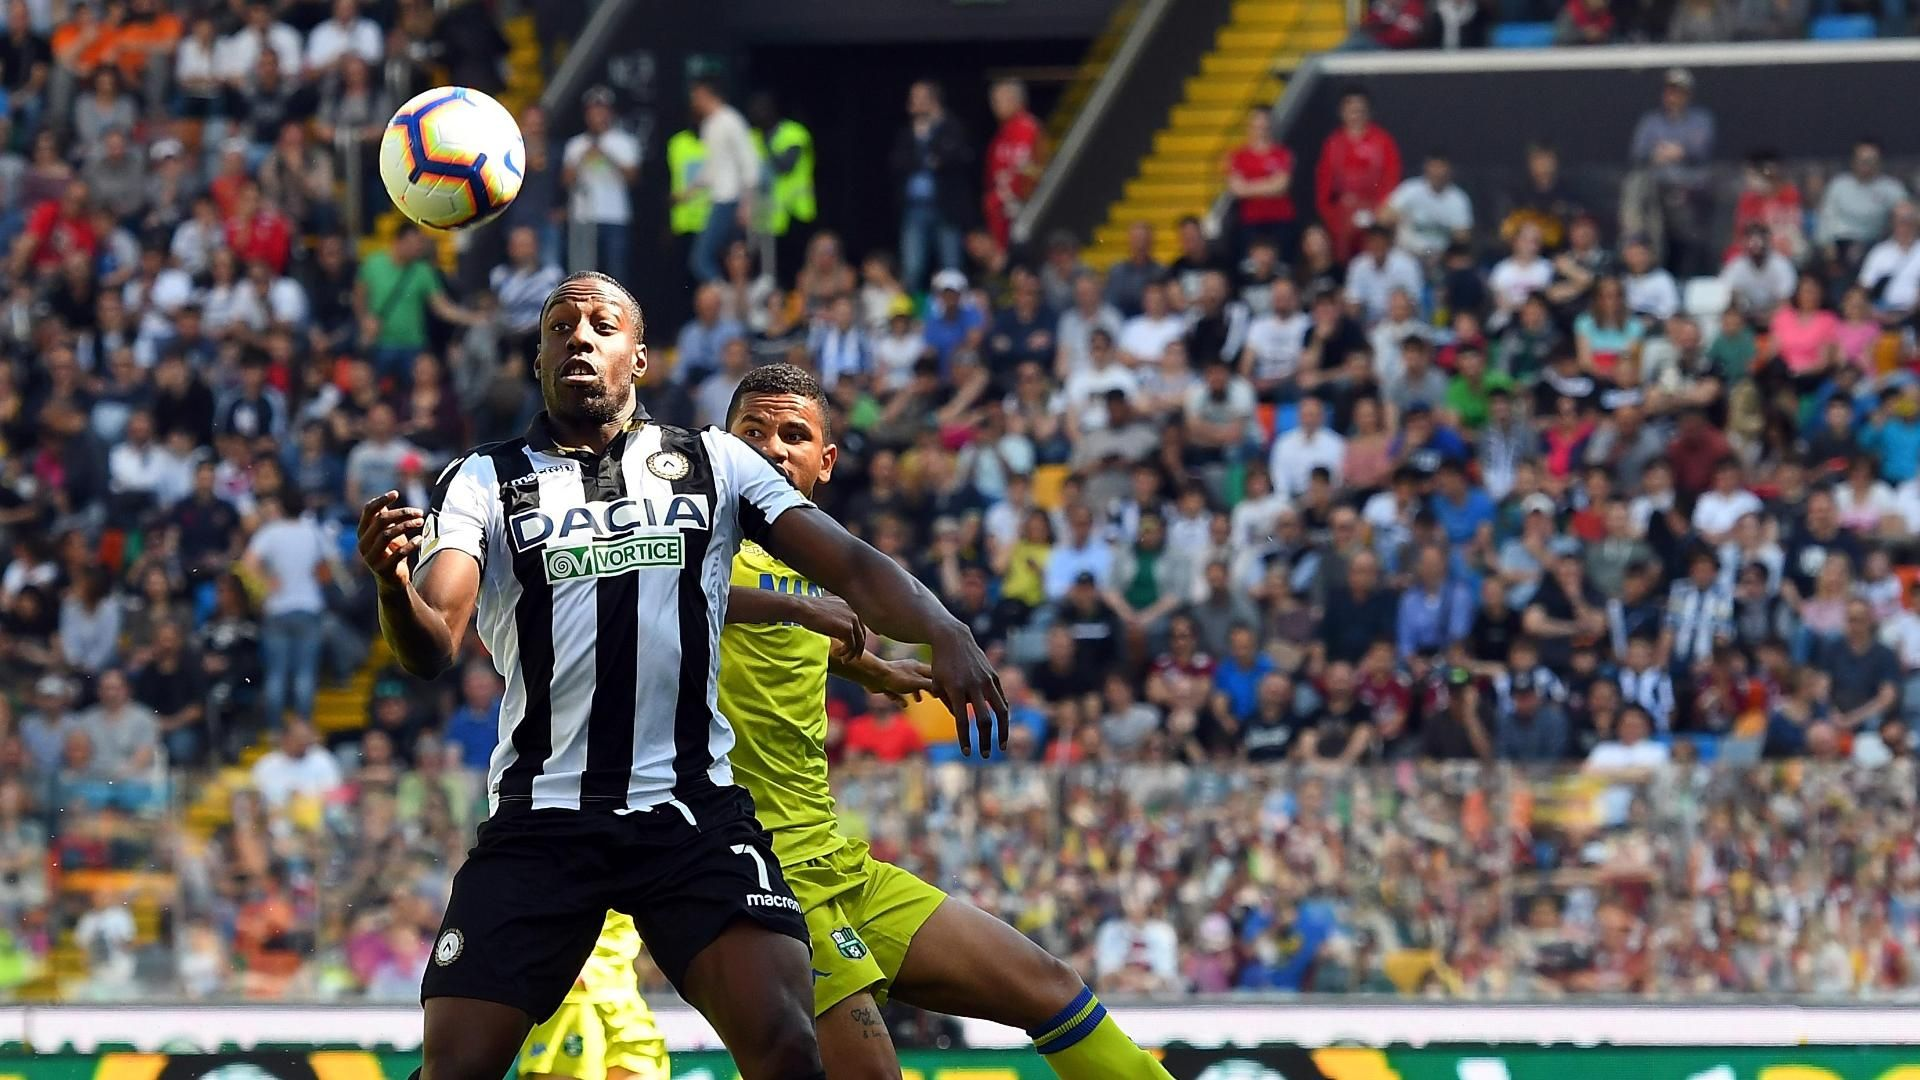 Udinese remain in relegation scrum with draw